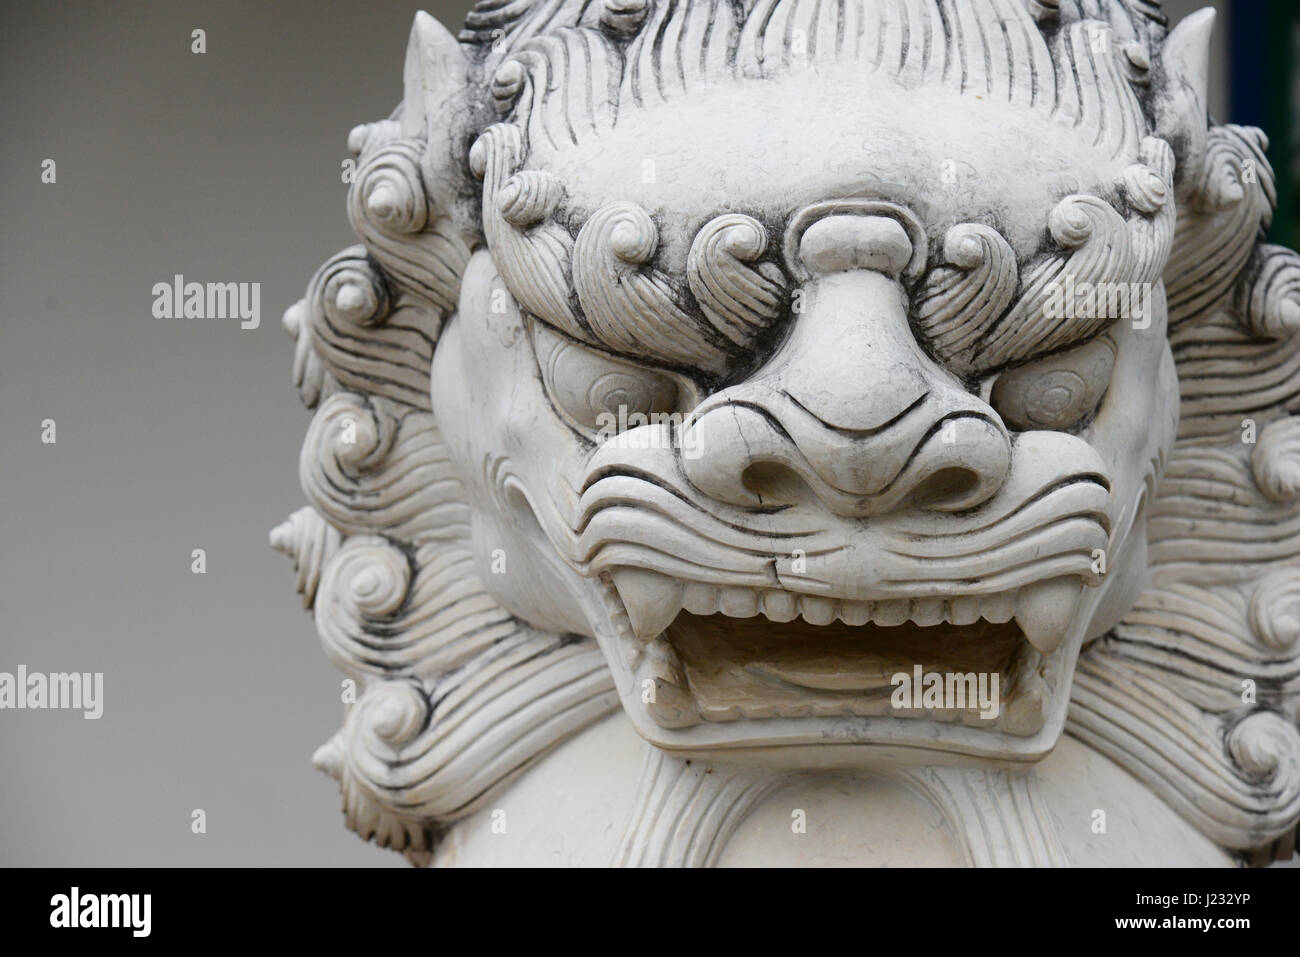 Chinese stone lion statue architecture guardian in chaina culture Stock Photo